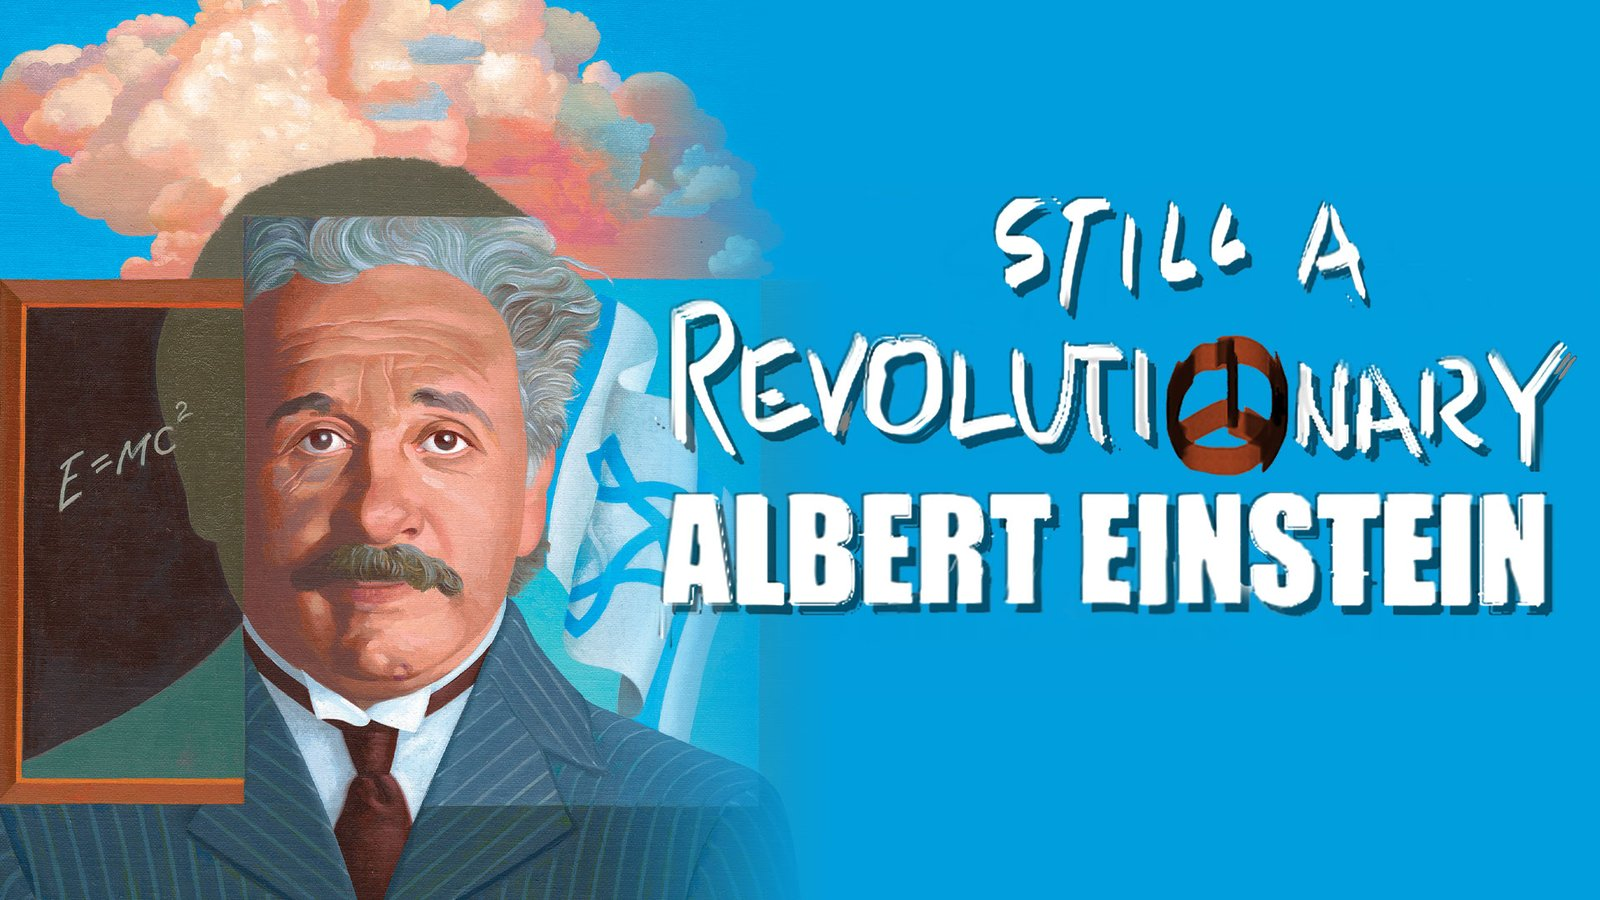 Albert Einstein: Still a Revolutionary